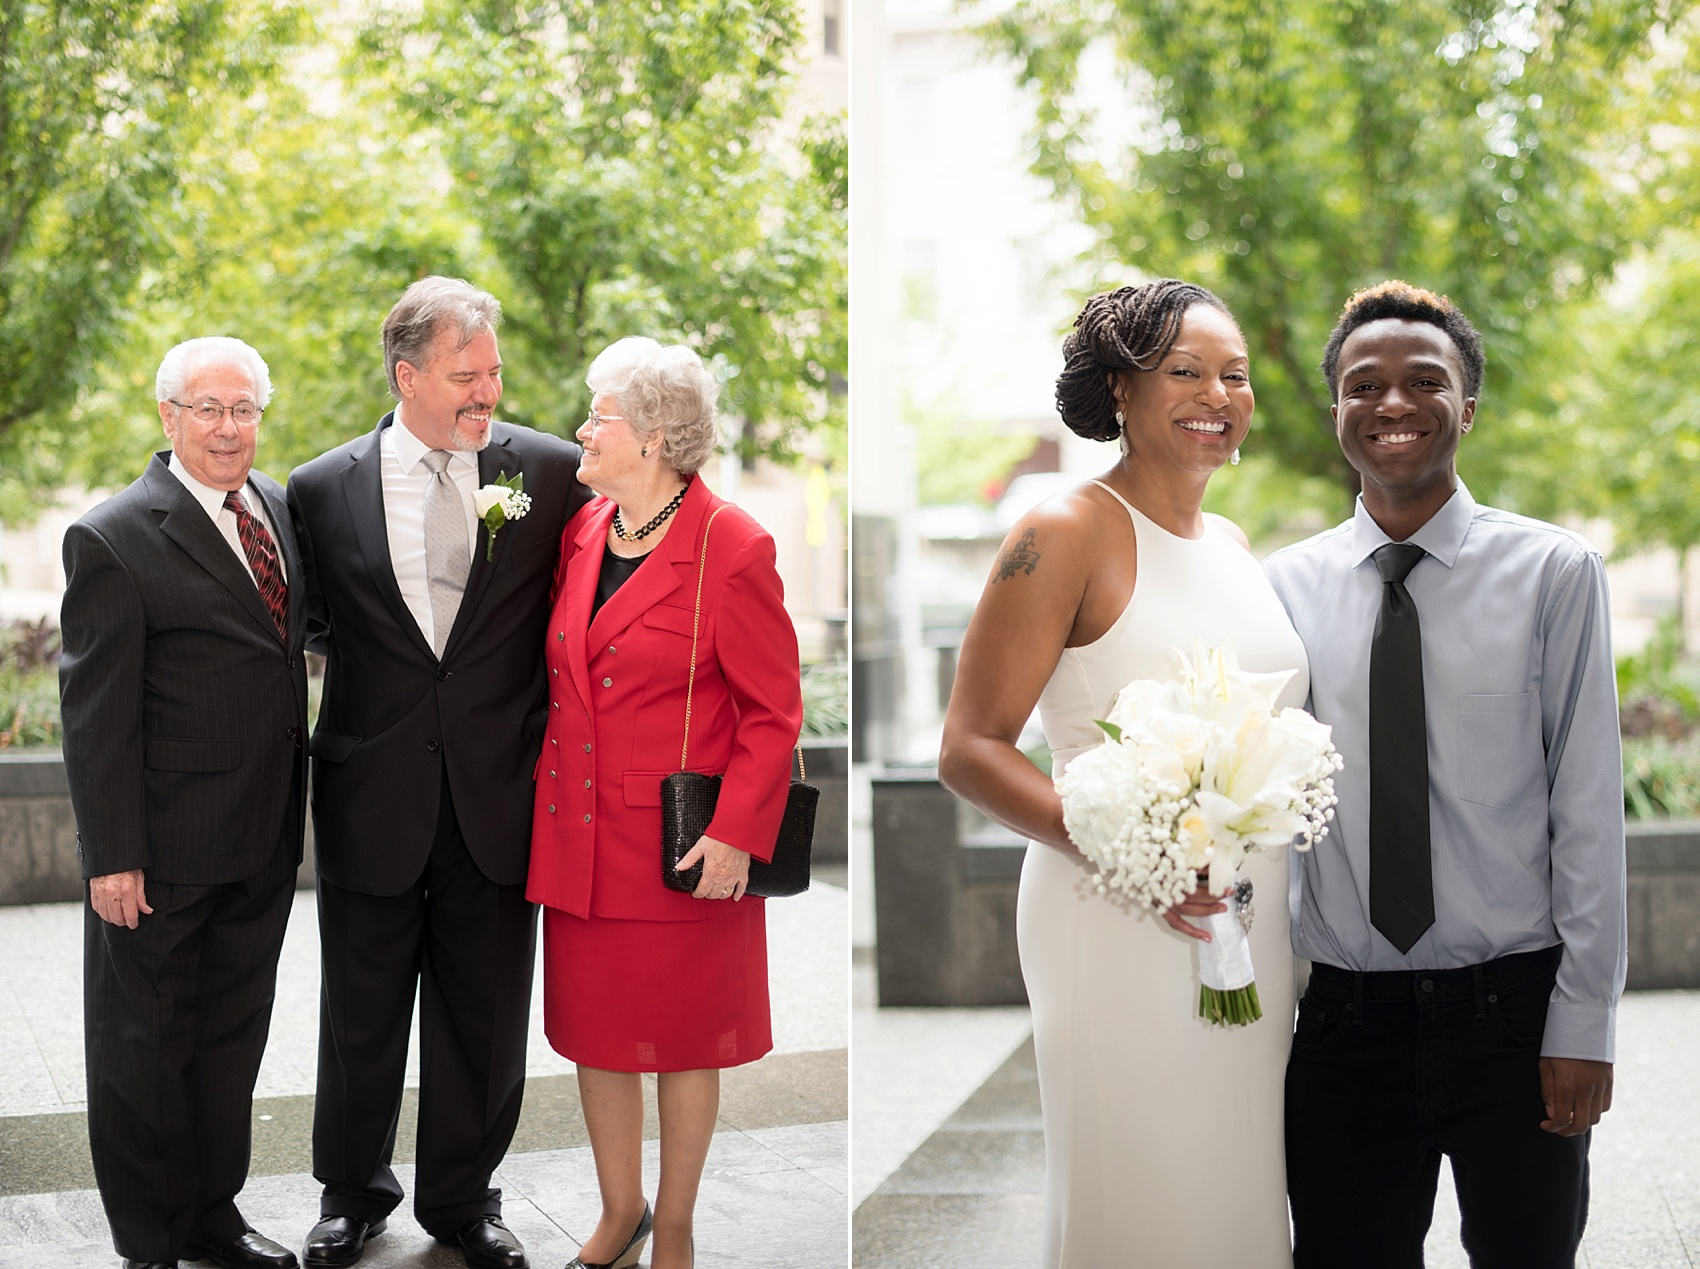 Downtown Raleigh, NC mixed race courthouse wedding. Photos by Mikkel Paige Photography. Photos of the bride and groom.